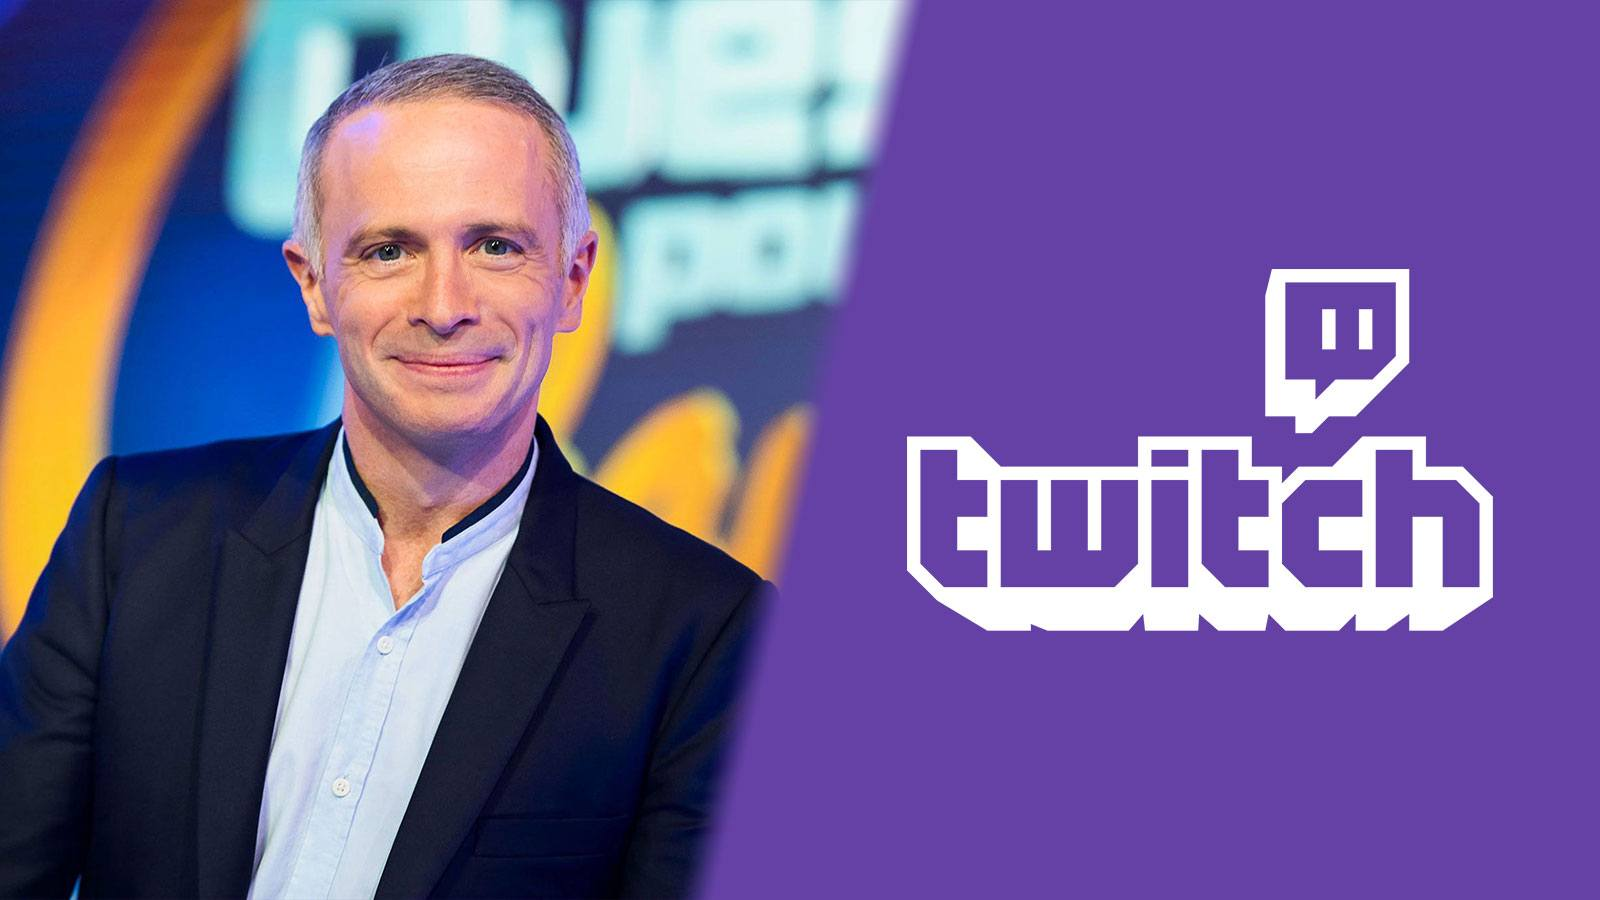 France TV arrive sur Twitch